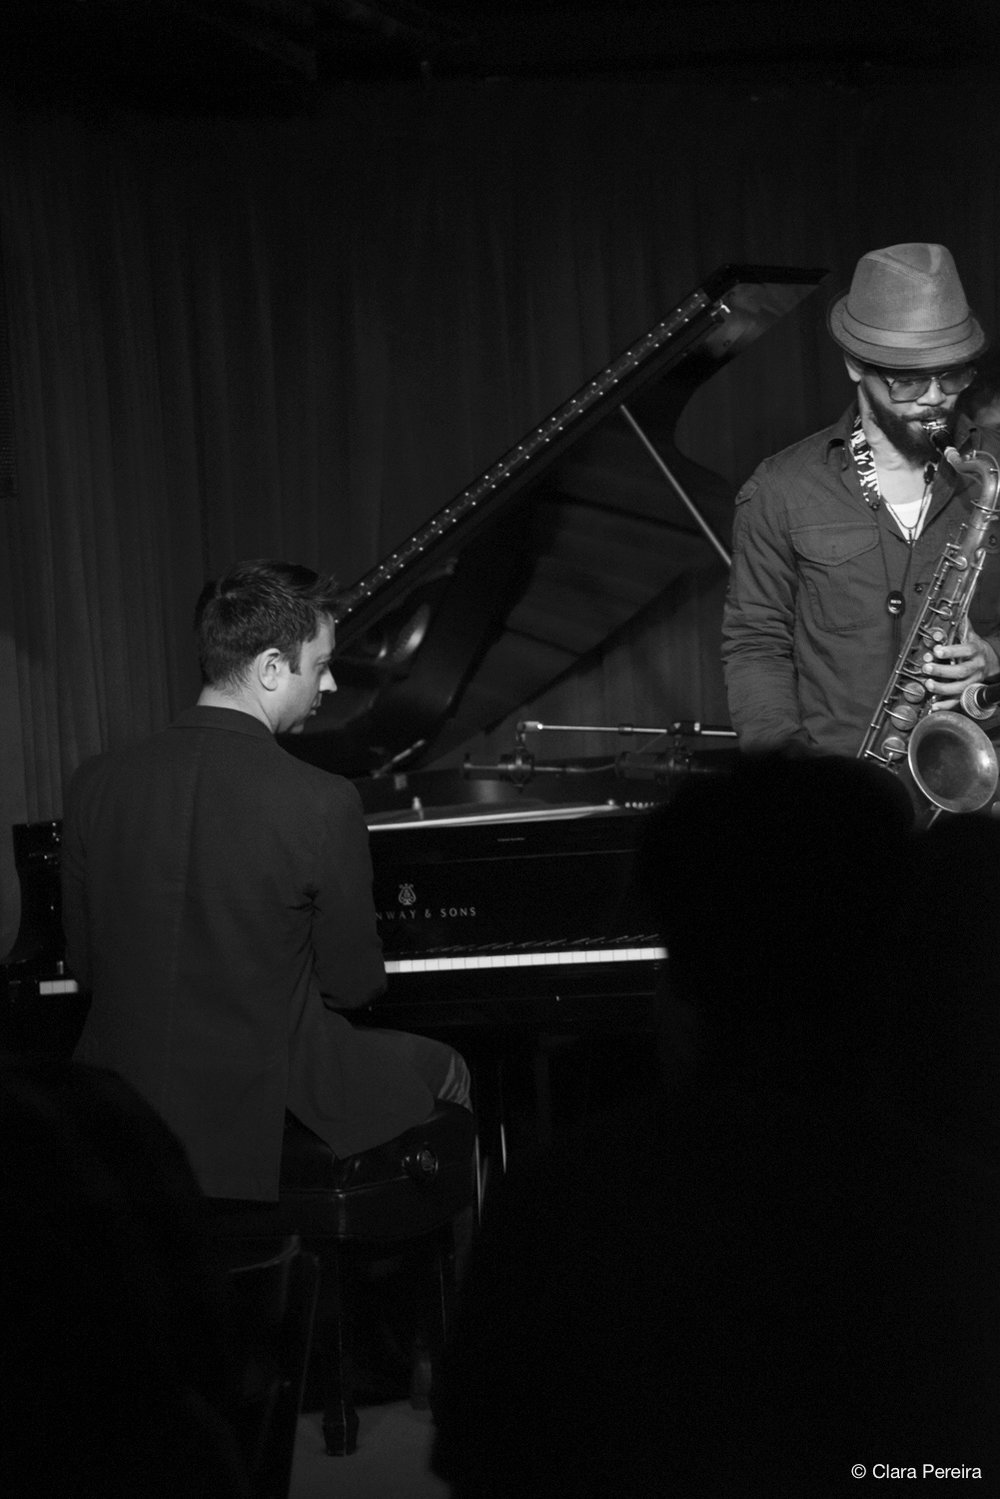 Vijay Iyer and Mark Shim, 2018